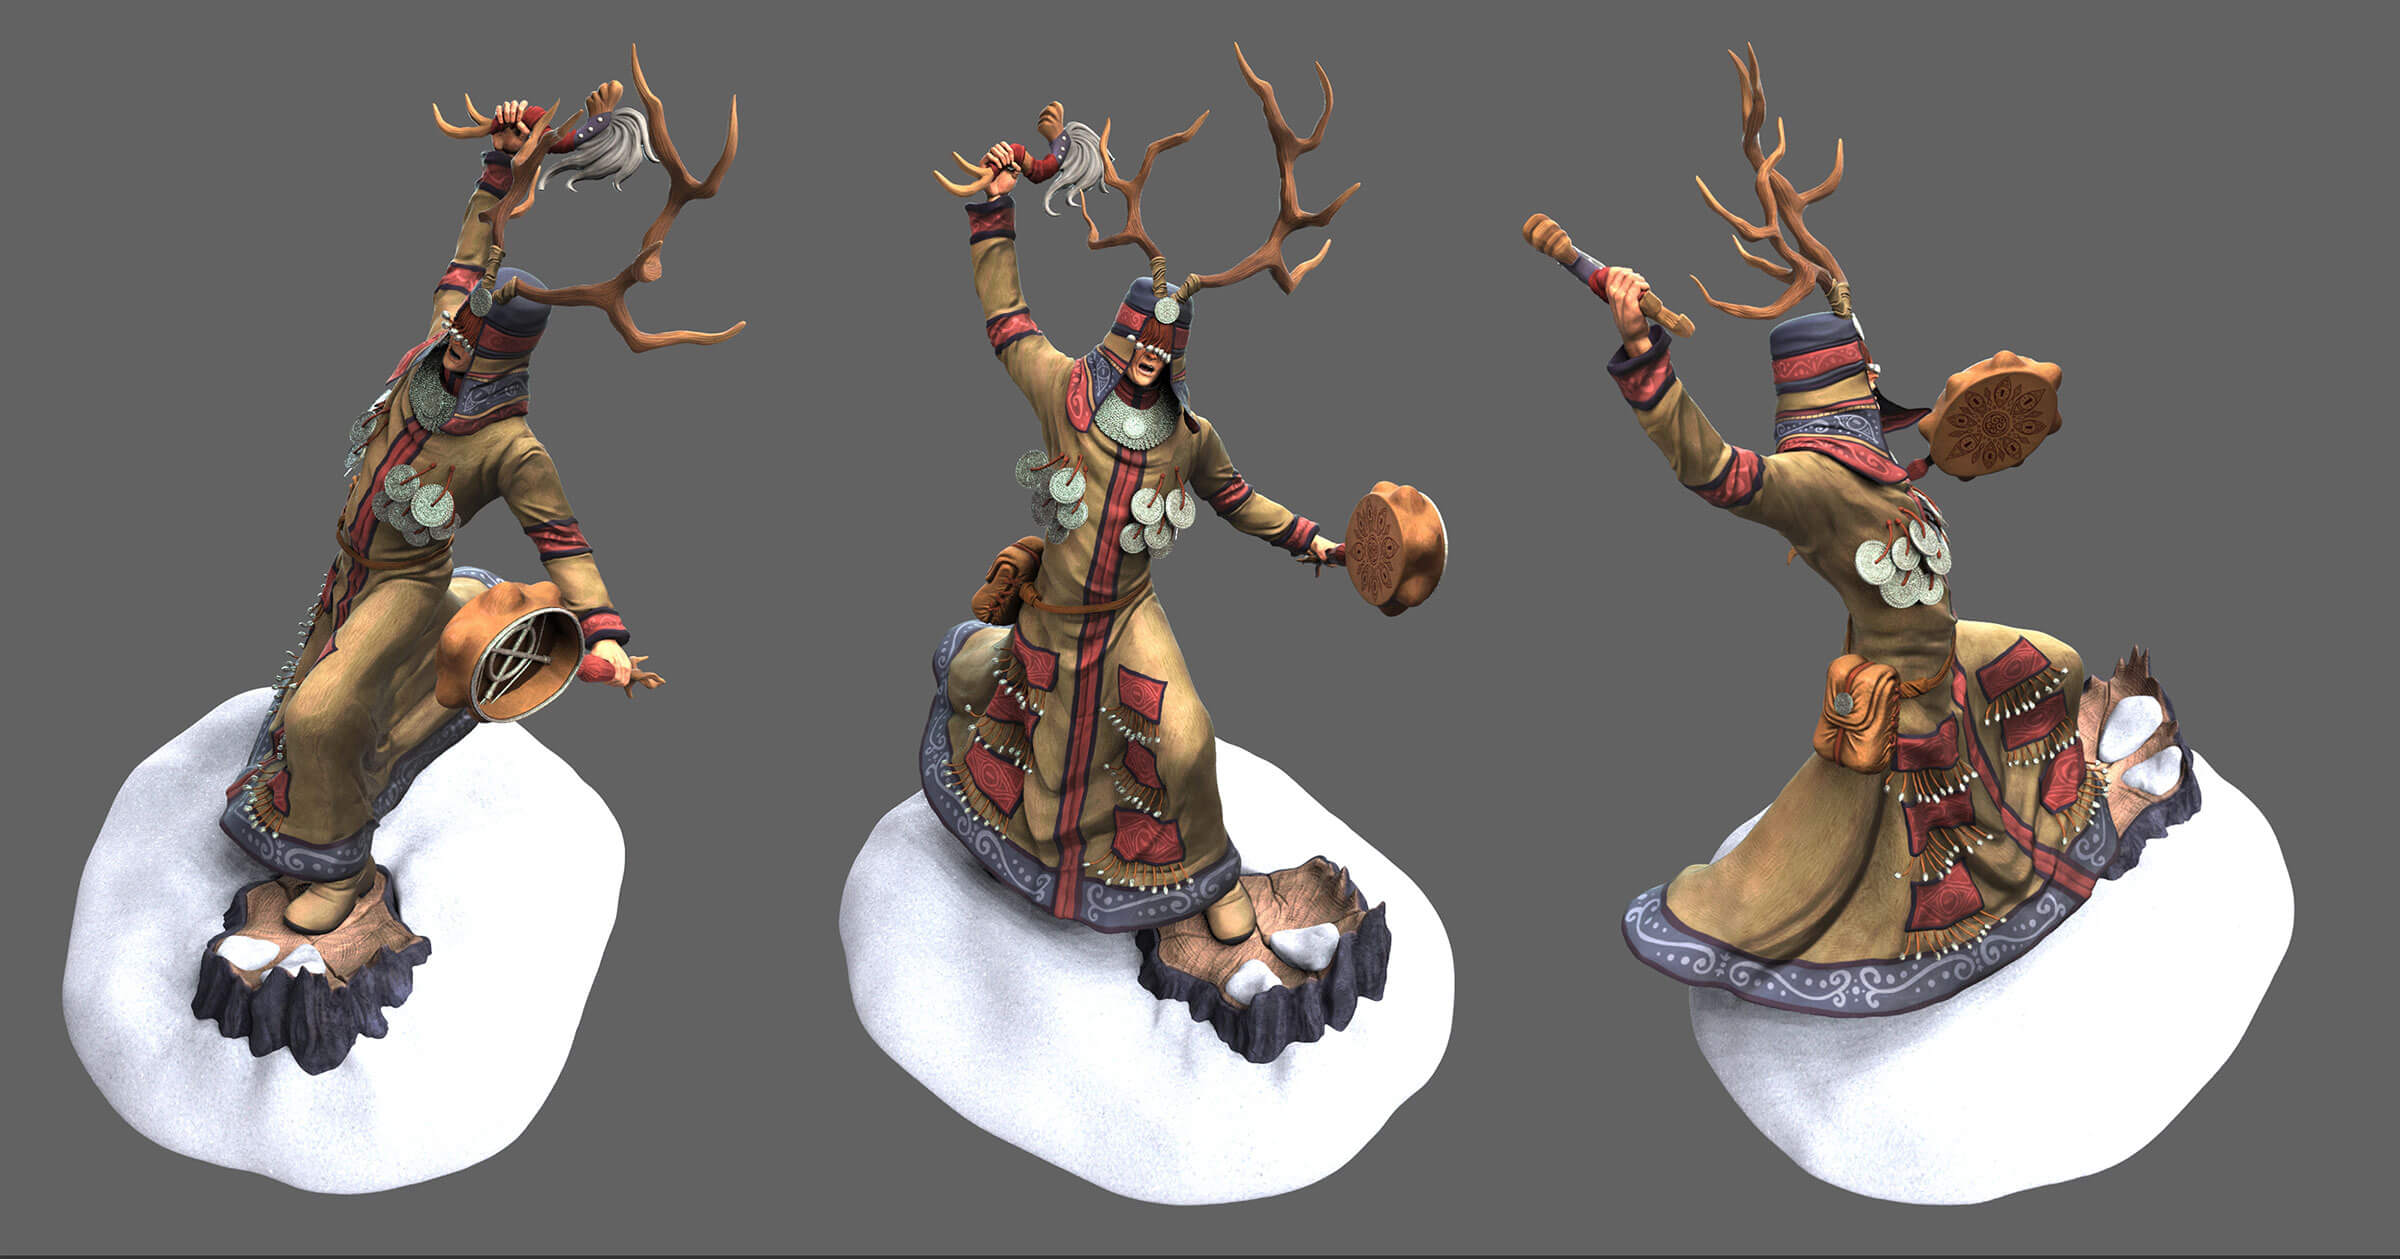 Three views of a shaman about to strike a handheld animal-skin drum wearing a brown frock and antlered headdress.